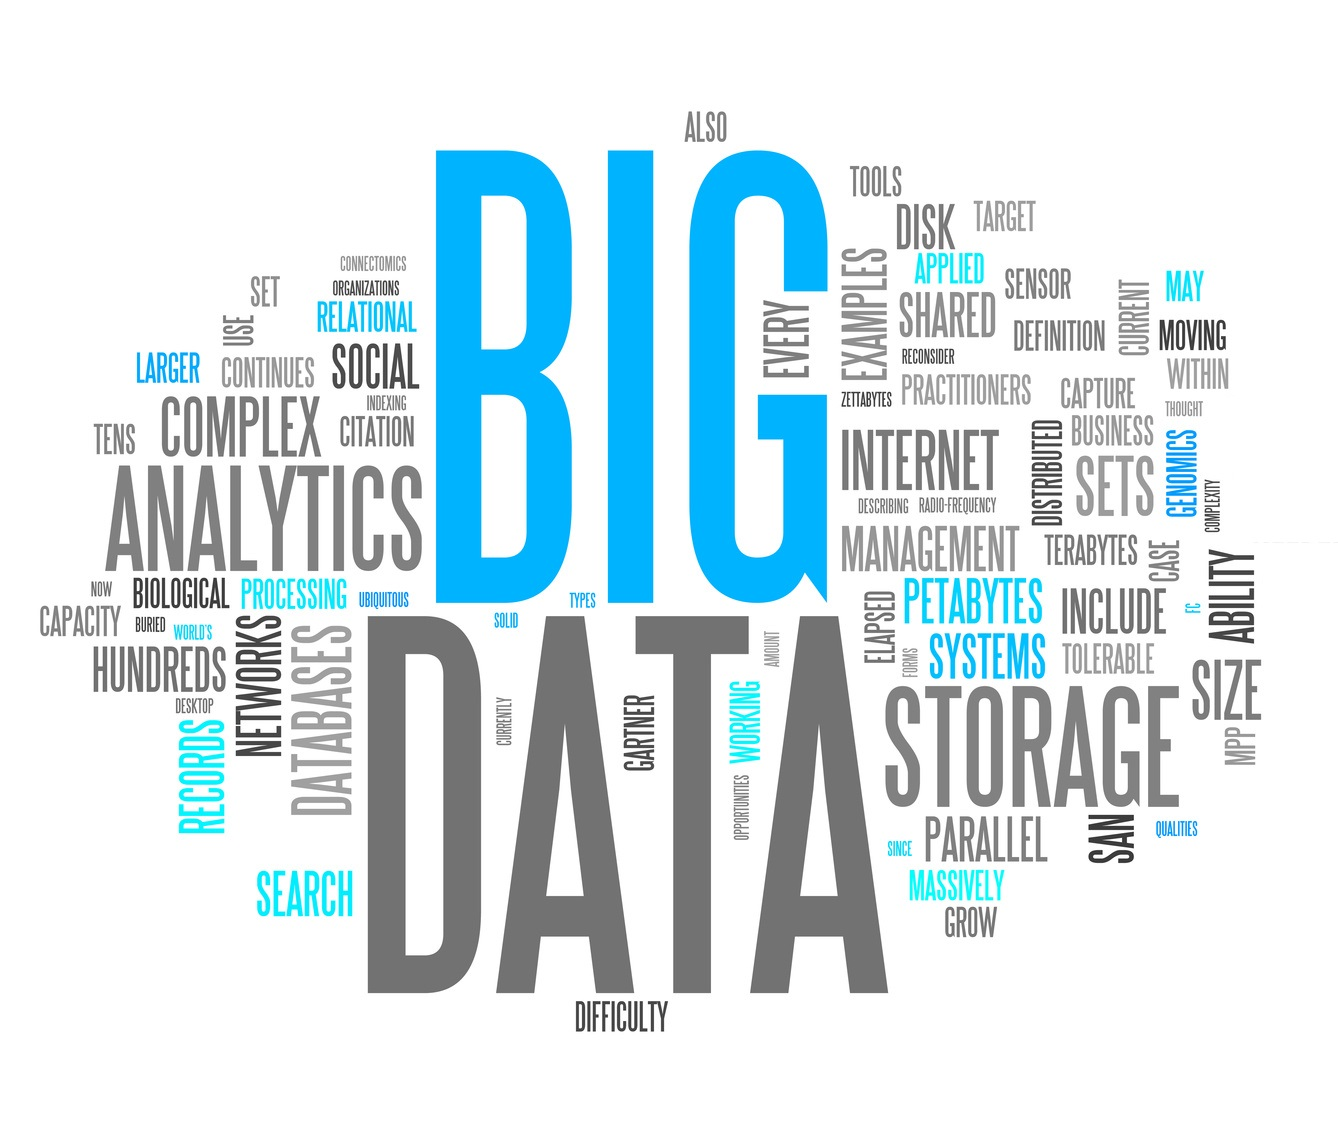 Big Data keywords